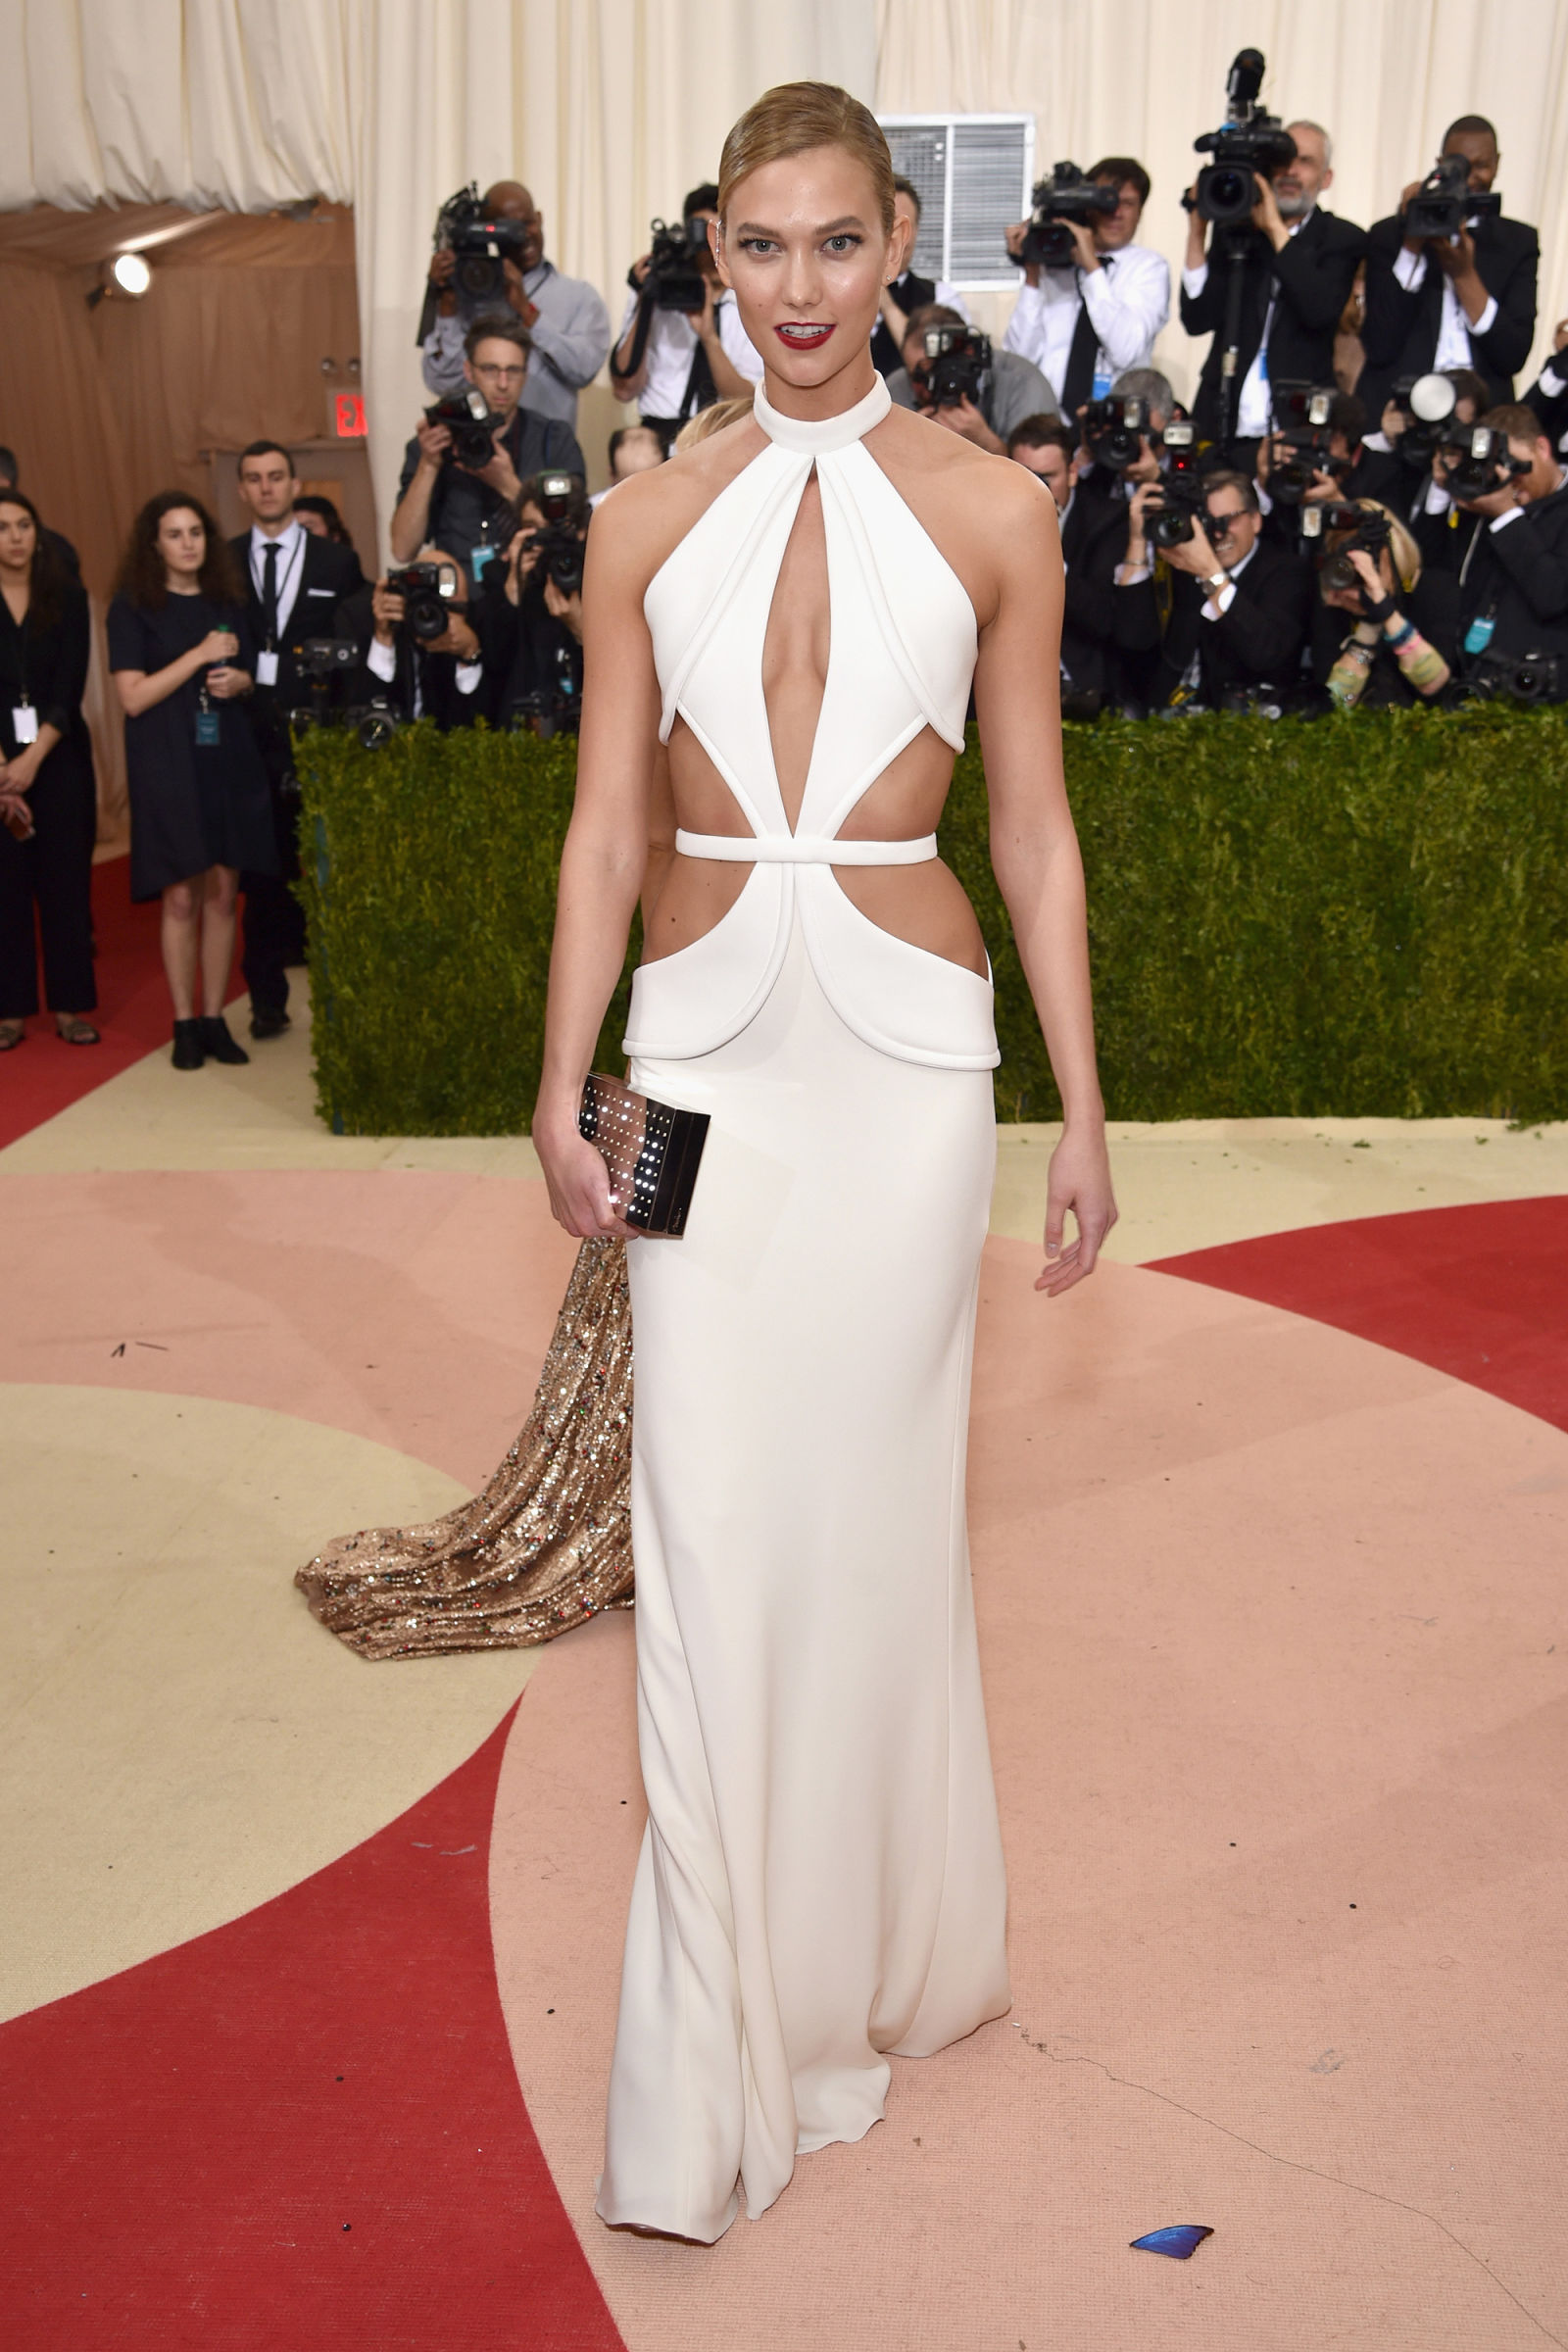 Karlie Kloss hairstyles at Met Gala 2016